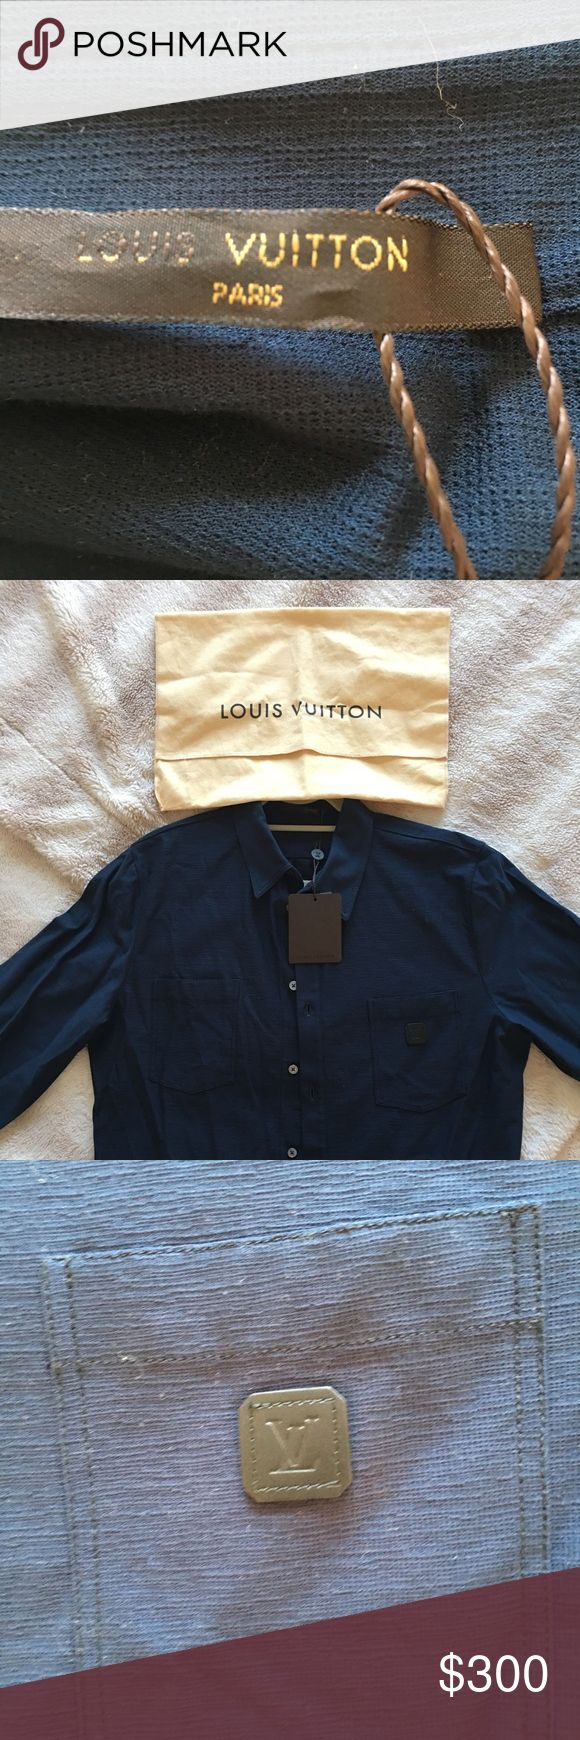 Mens shirt Brand new never worn with tags attached and dust bag navy blue Louis Vuitton men's shirt Louis Vuitton Shirts Casual Button Down Shirts